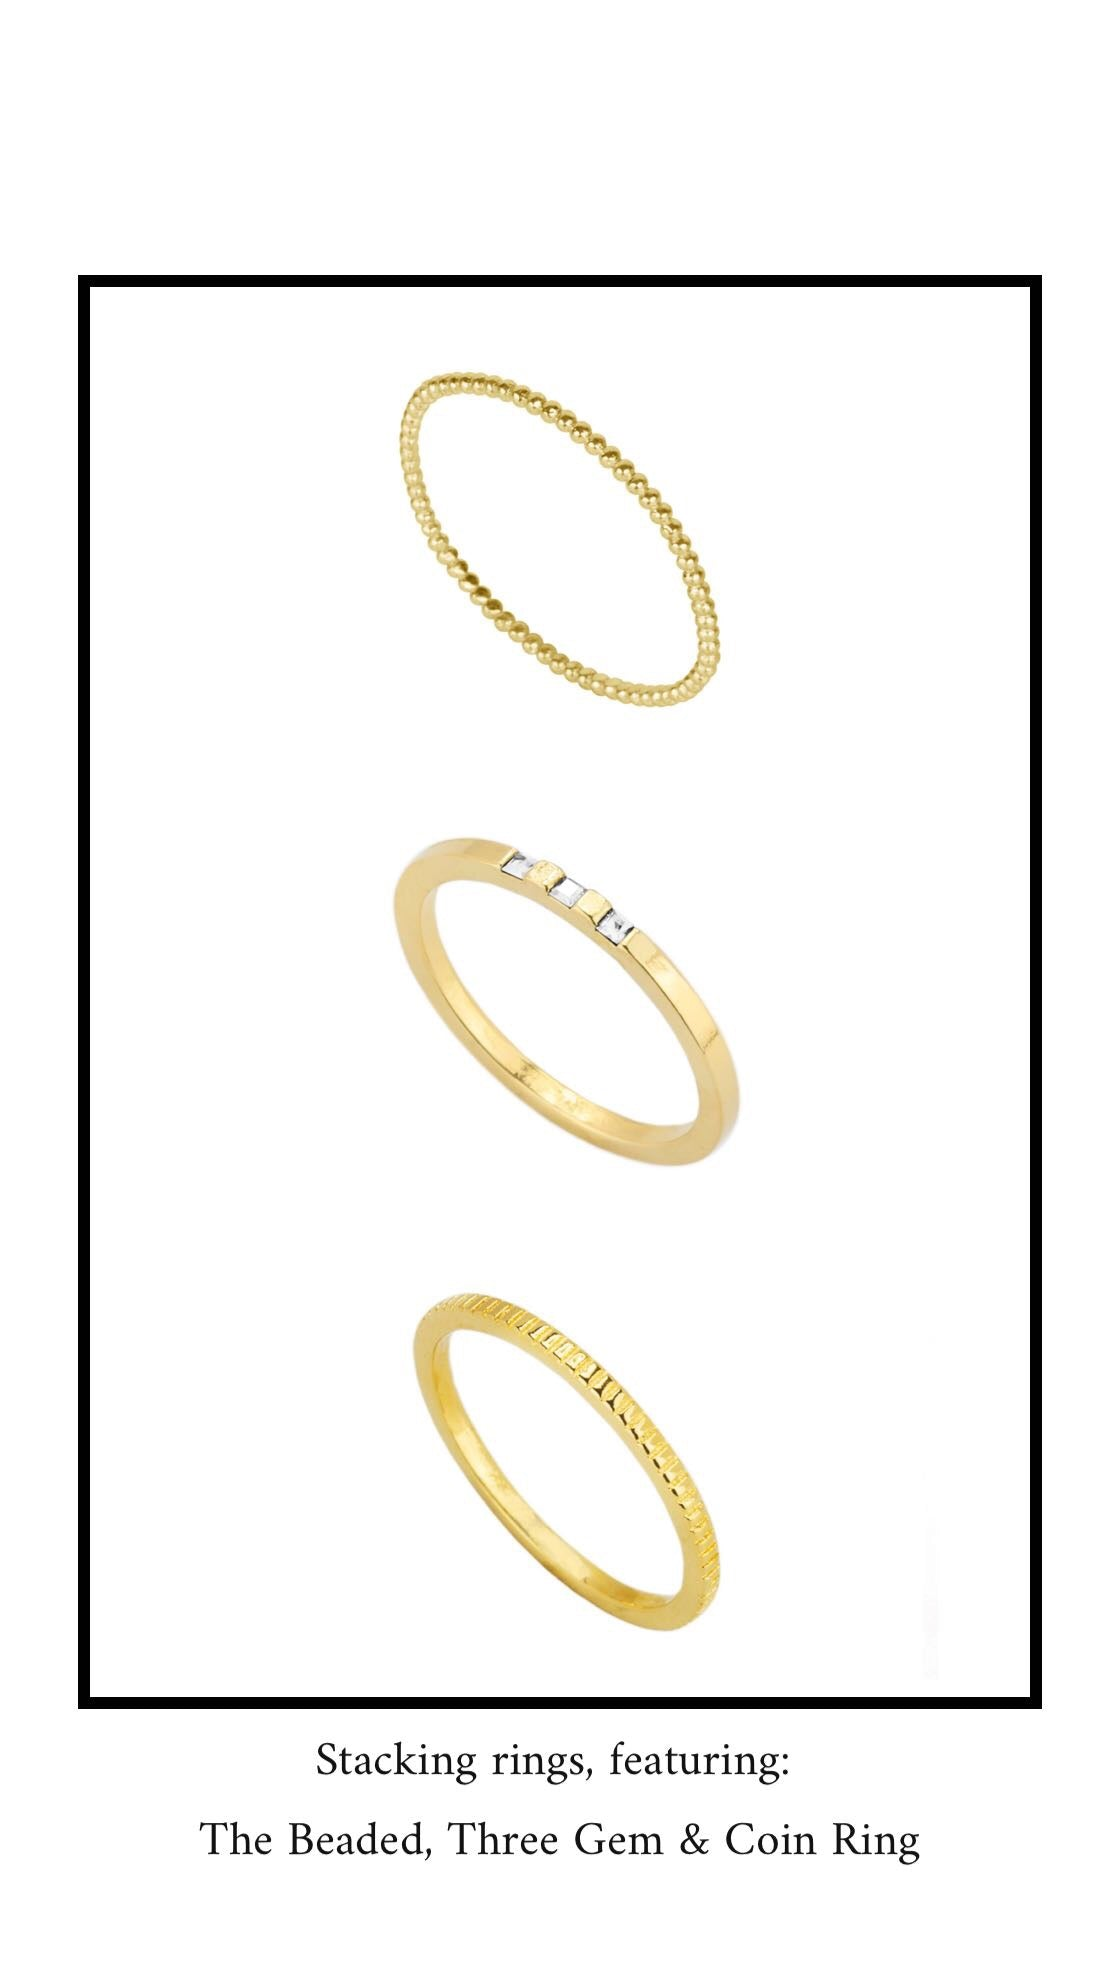 Dainty stacking rings, Katie dean jewelry